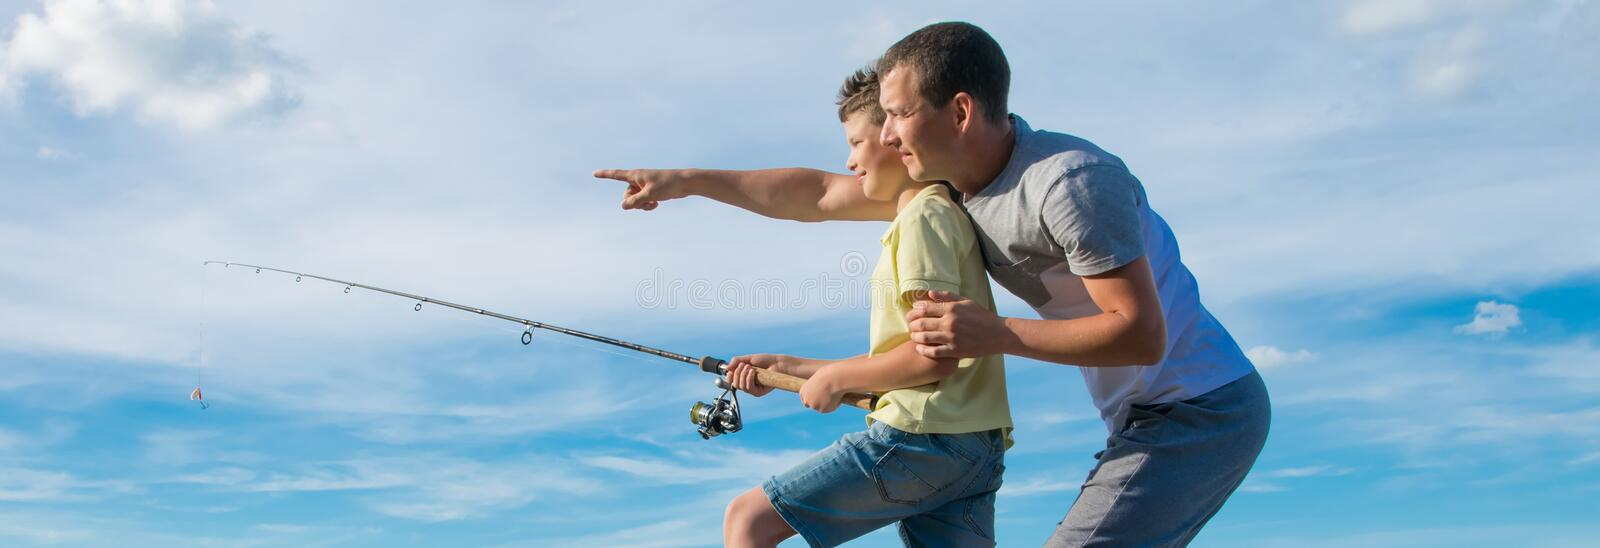 Against the blue sky, the son holds a fishing rod, and the father shows in the distance stock images